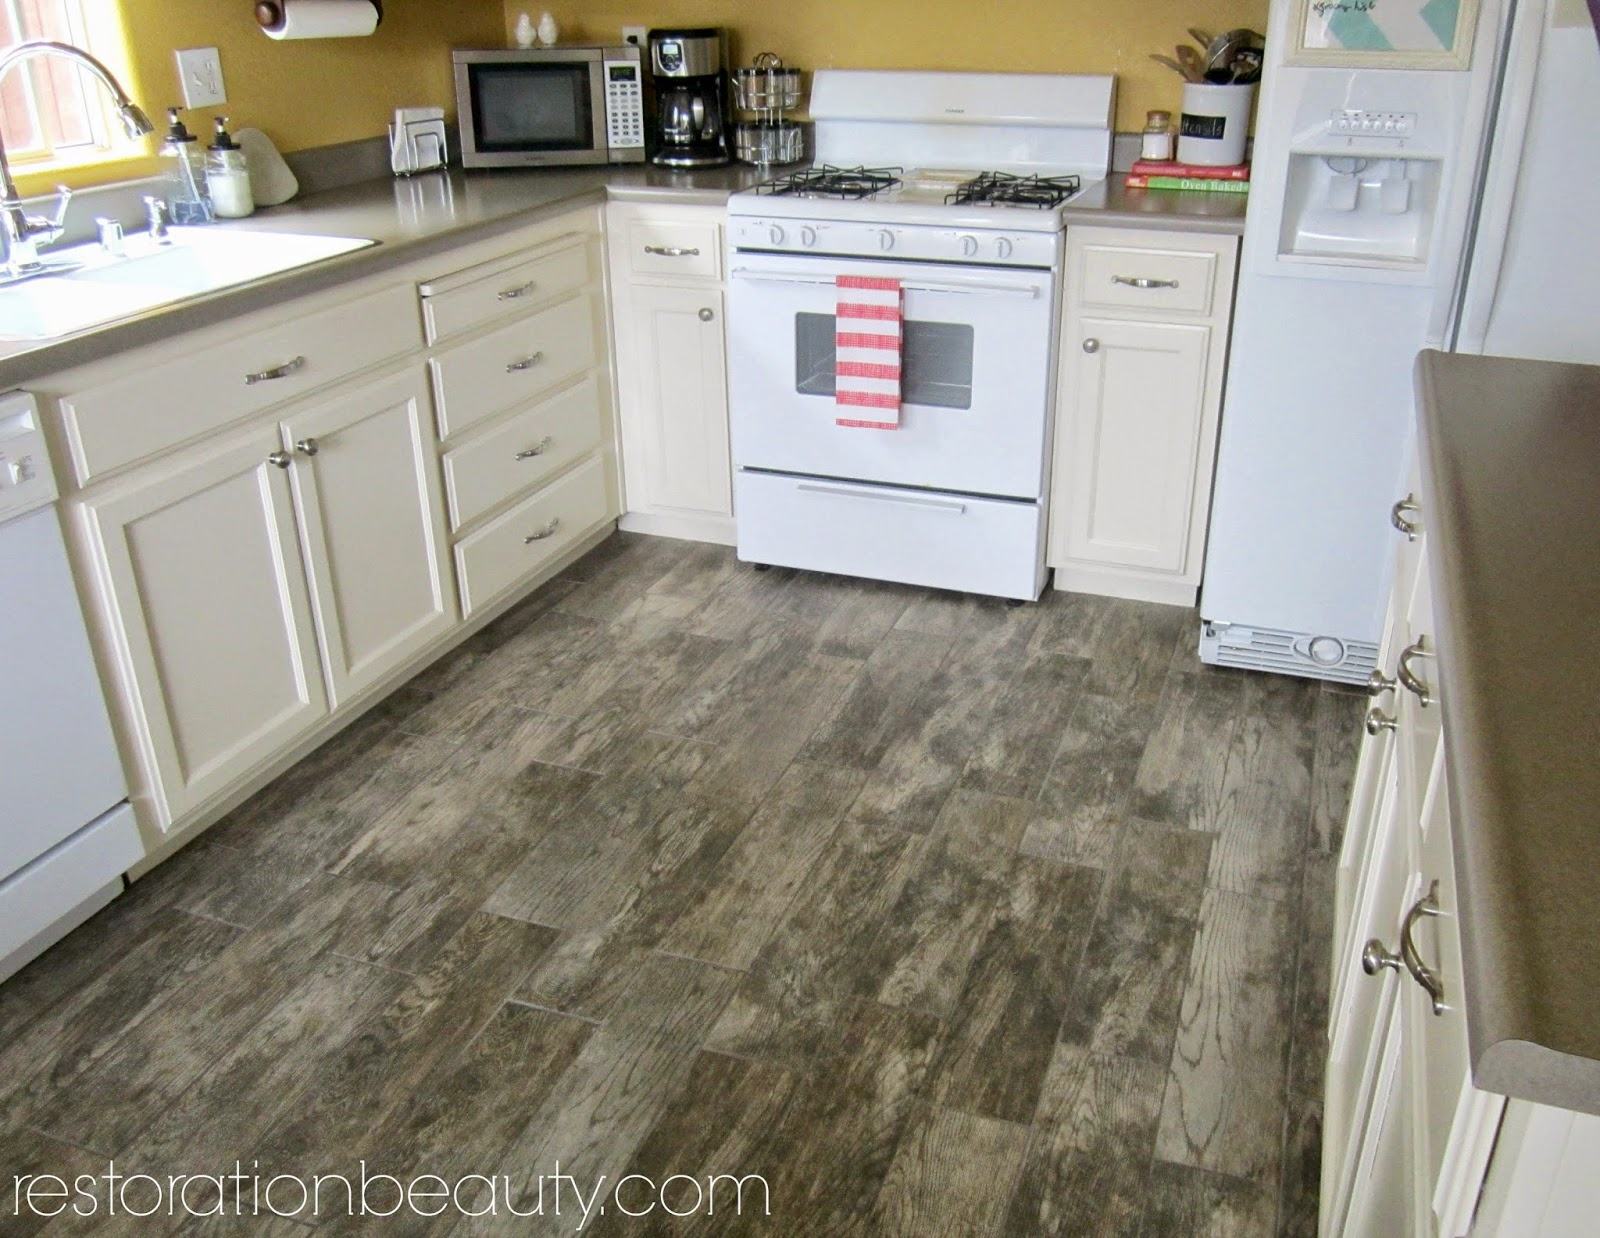 wood floor tile in kitchen.  Restoration Beauty Faux Wood Tile Flooring In The Kitchen